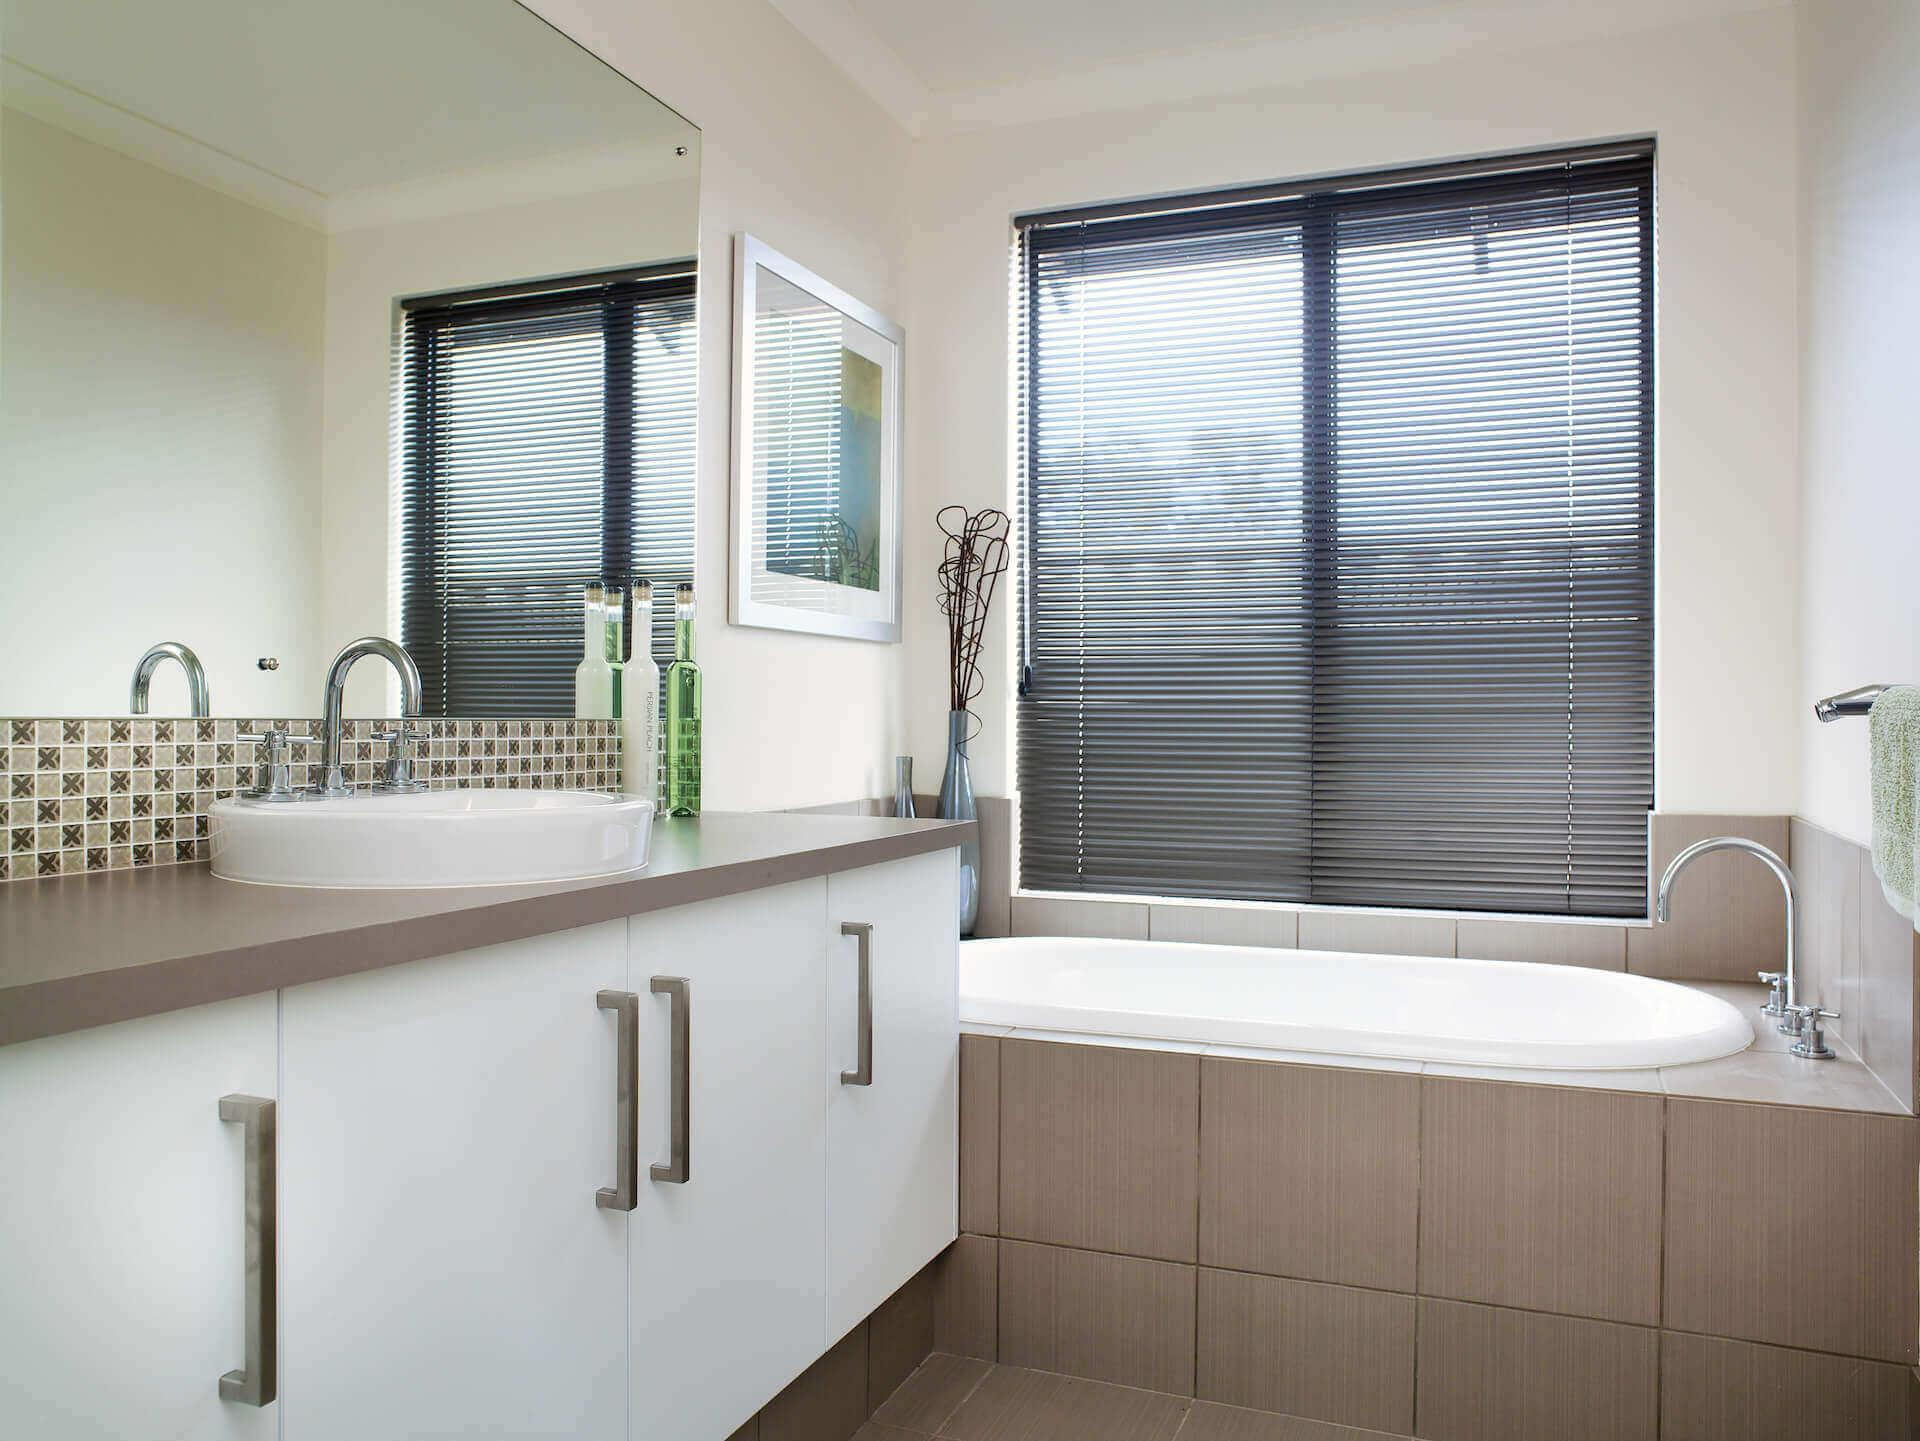 Rural Building Co - The Coastal View home - bathroom with bathtub